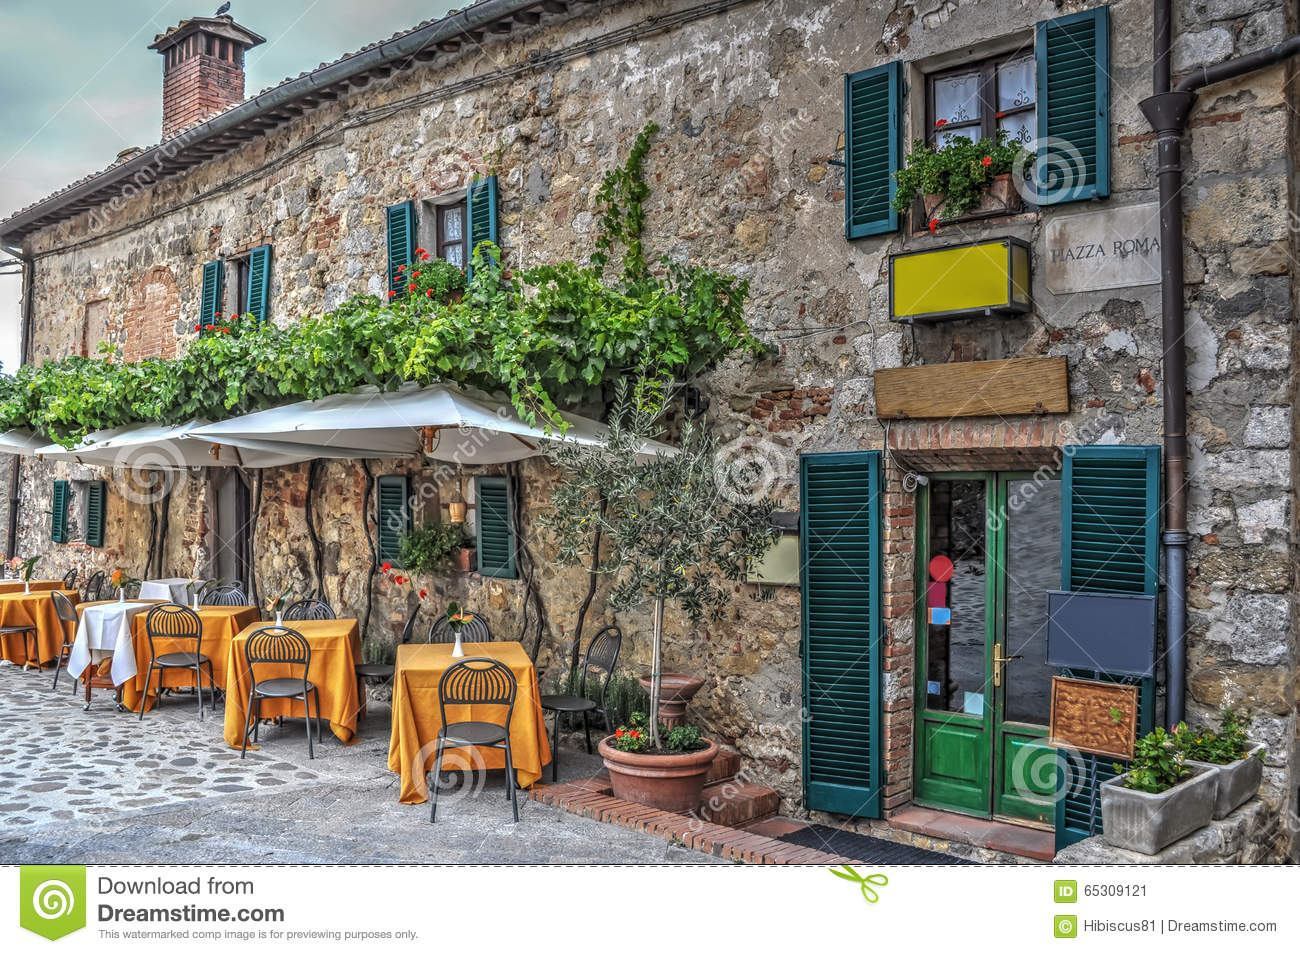 Restaurant tables in Moteriggioni